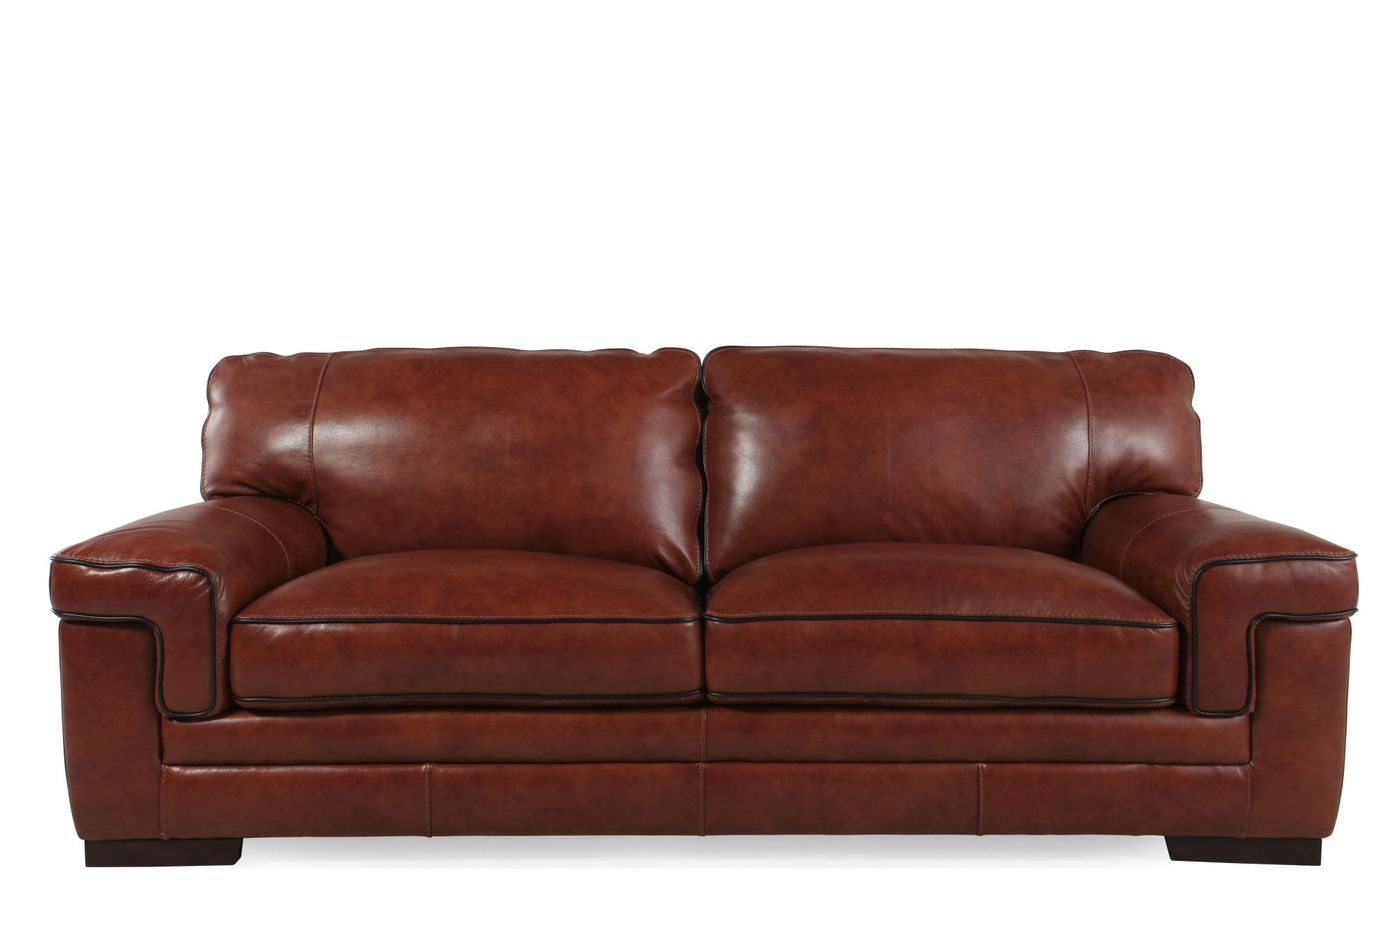 Best Simon Li Leather Sofa 79 With Additional Contemporary Sofa Inspiration with Simon Li Leather Sofa